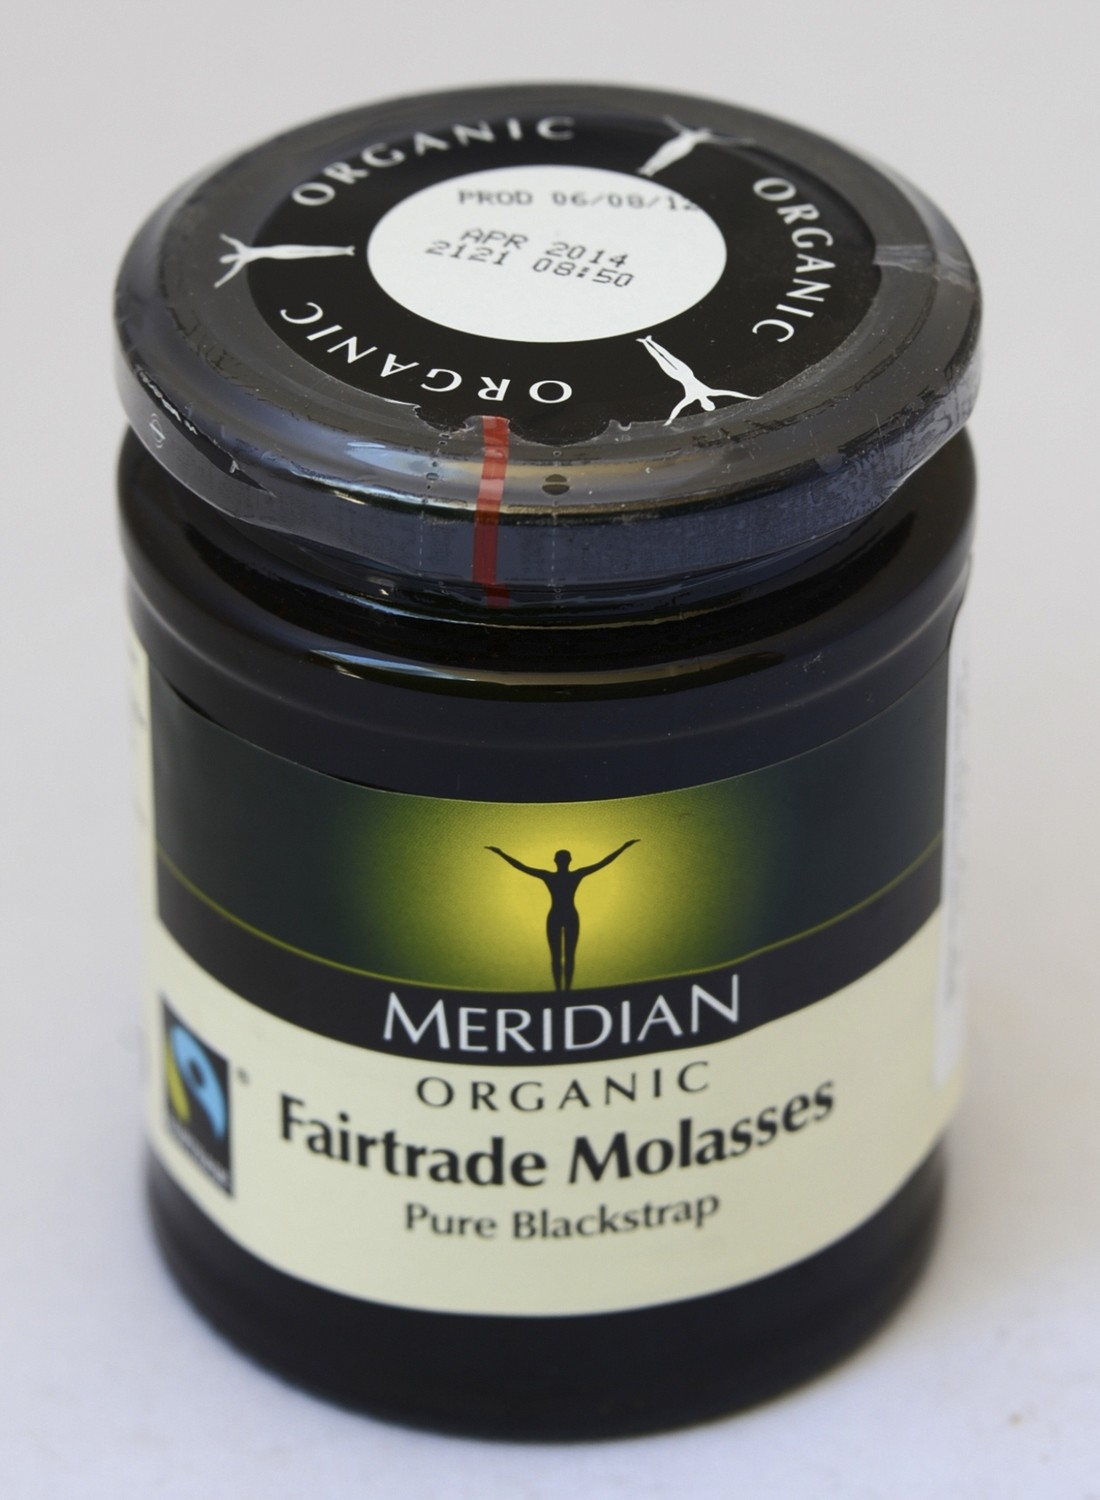 Meridian Organic Molasses Black Strap - 350ml